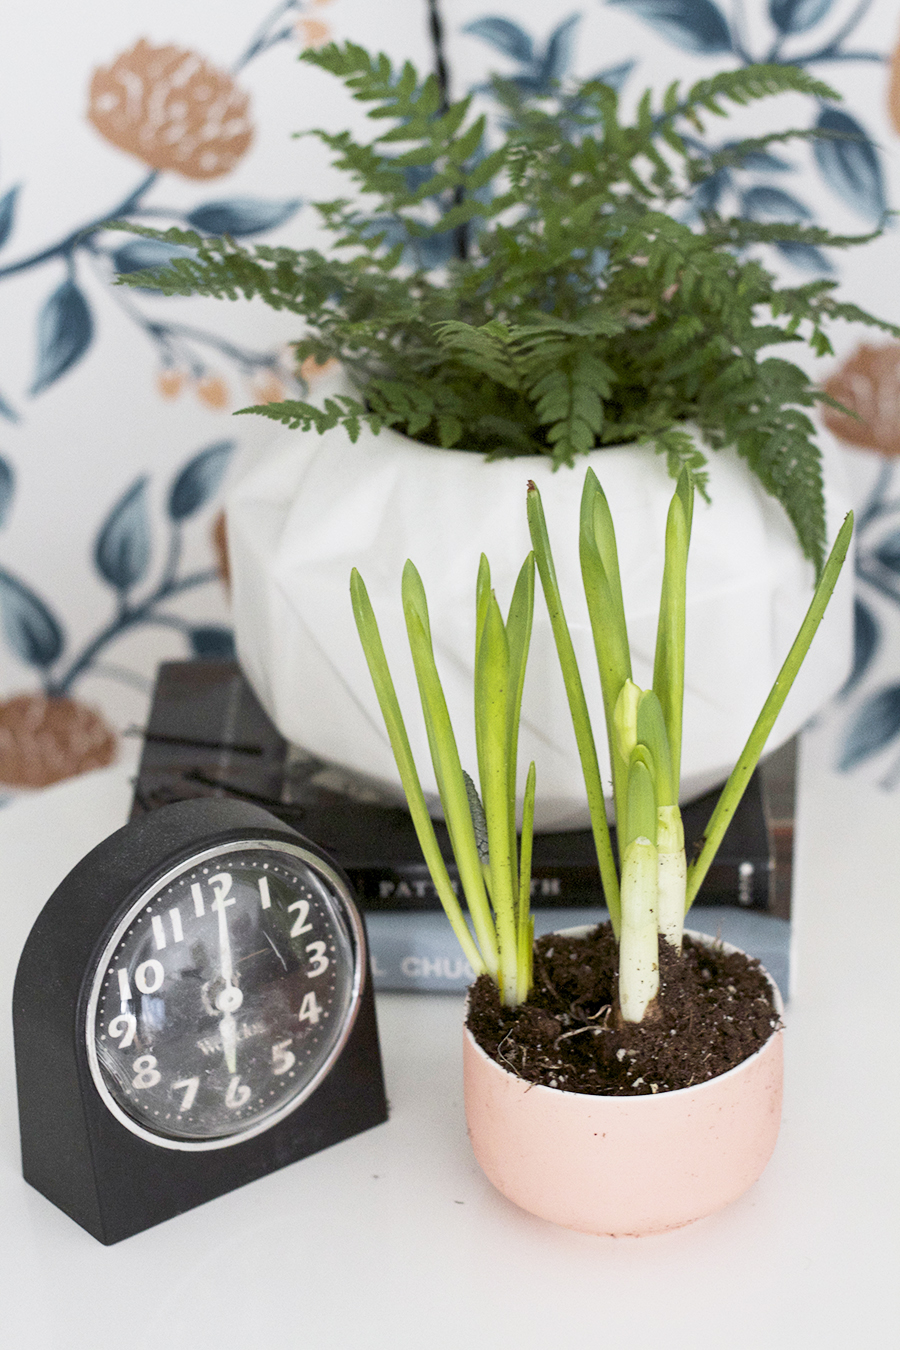 Add Spring to your home using grocery store bulb gardens and pretty little vessels